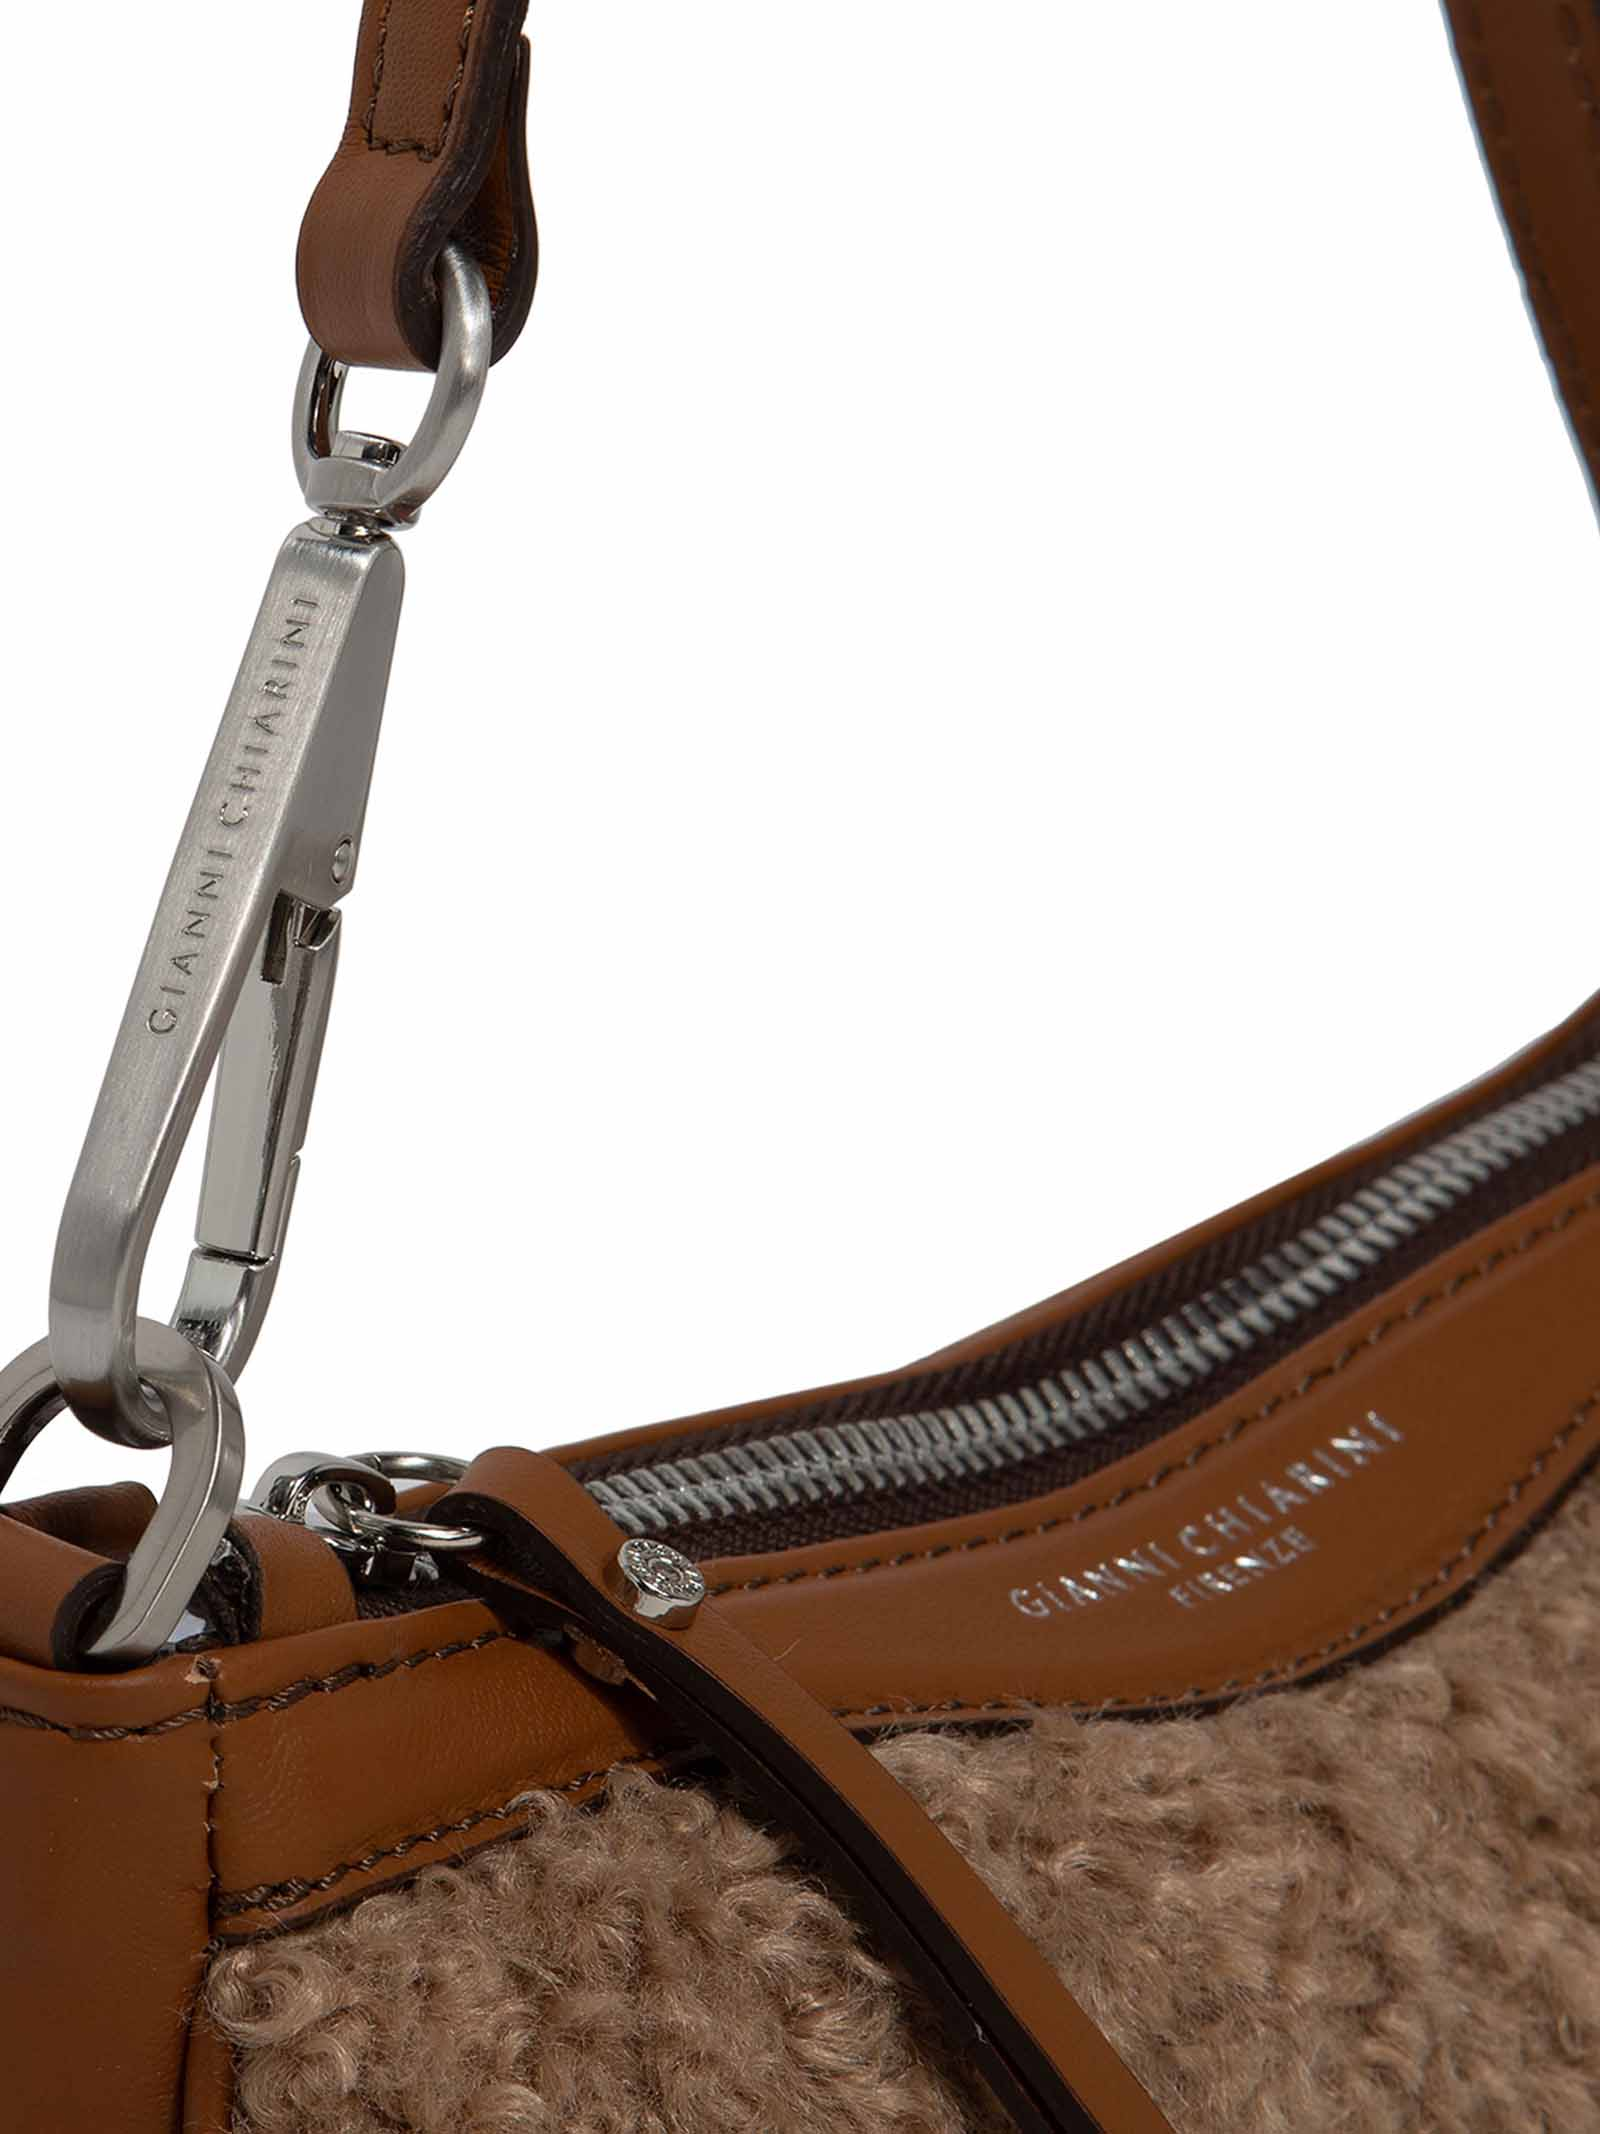 Women's Shoulder Bag Brooke in Bouclè Fabric and Tan Leather Inserts with Detachable Handle and Cross-body Strap in Color Matching Gianni Chiarini | Bags and backpacks | BS886011567